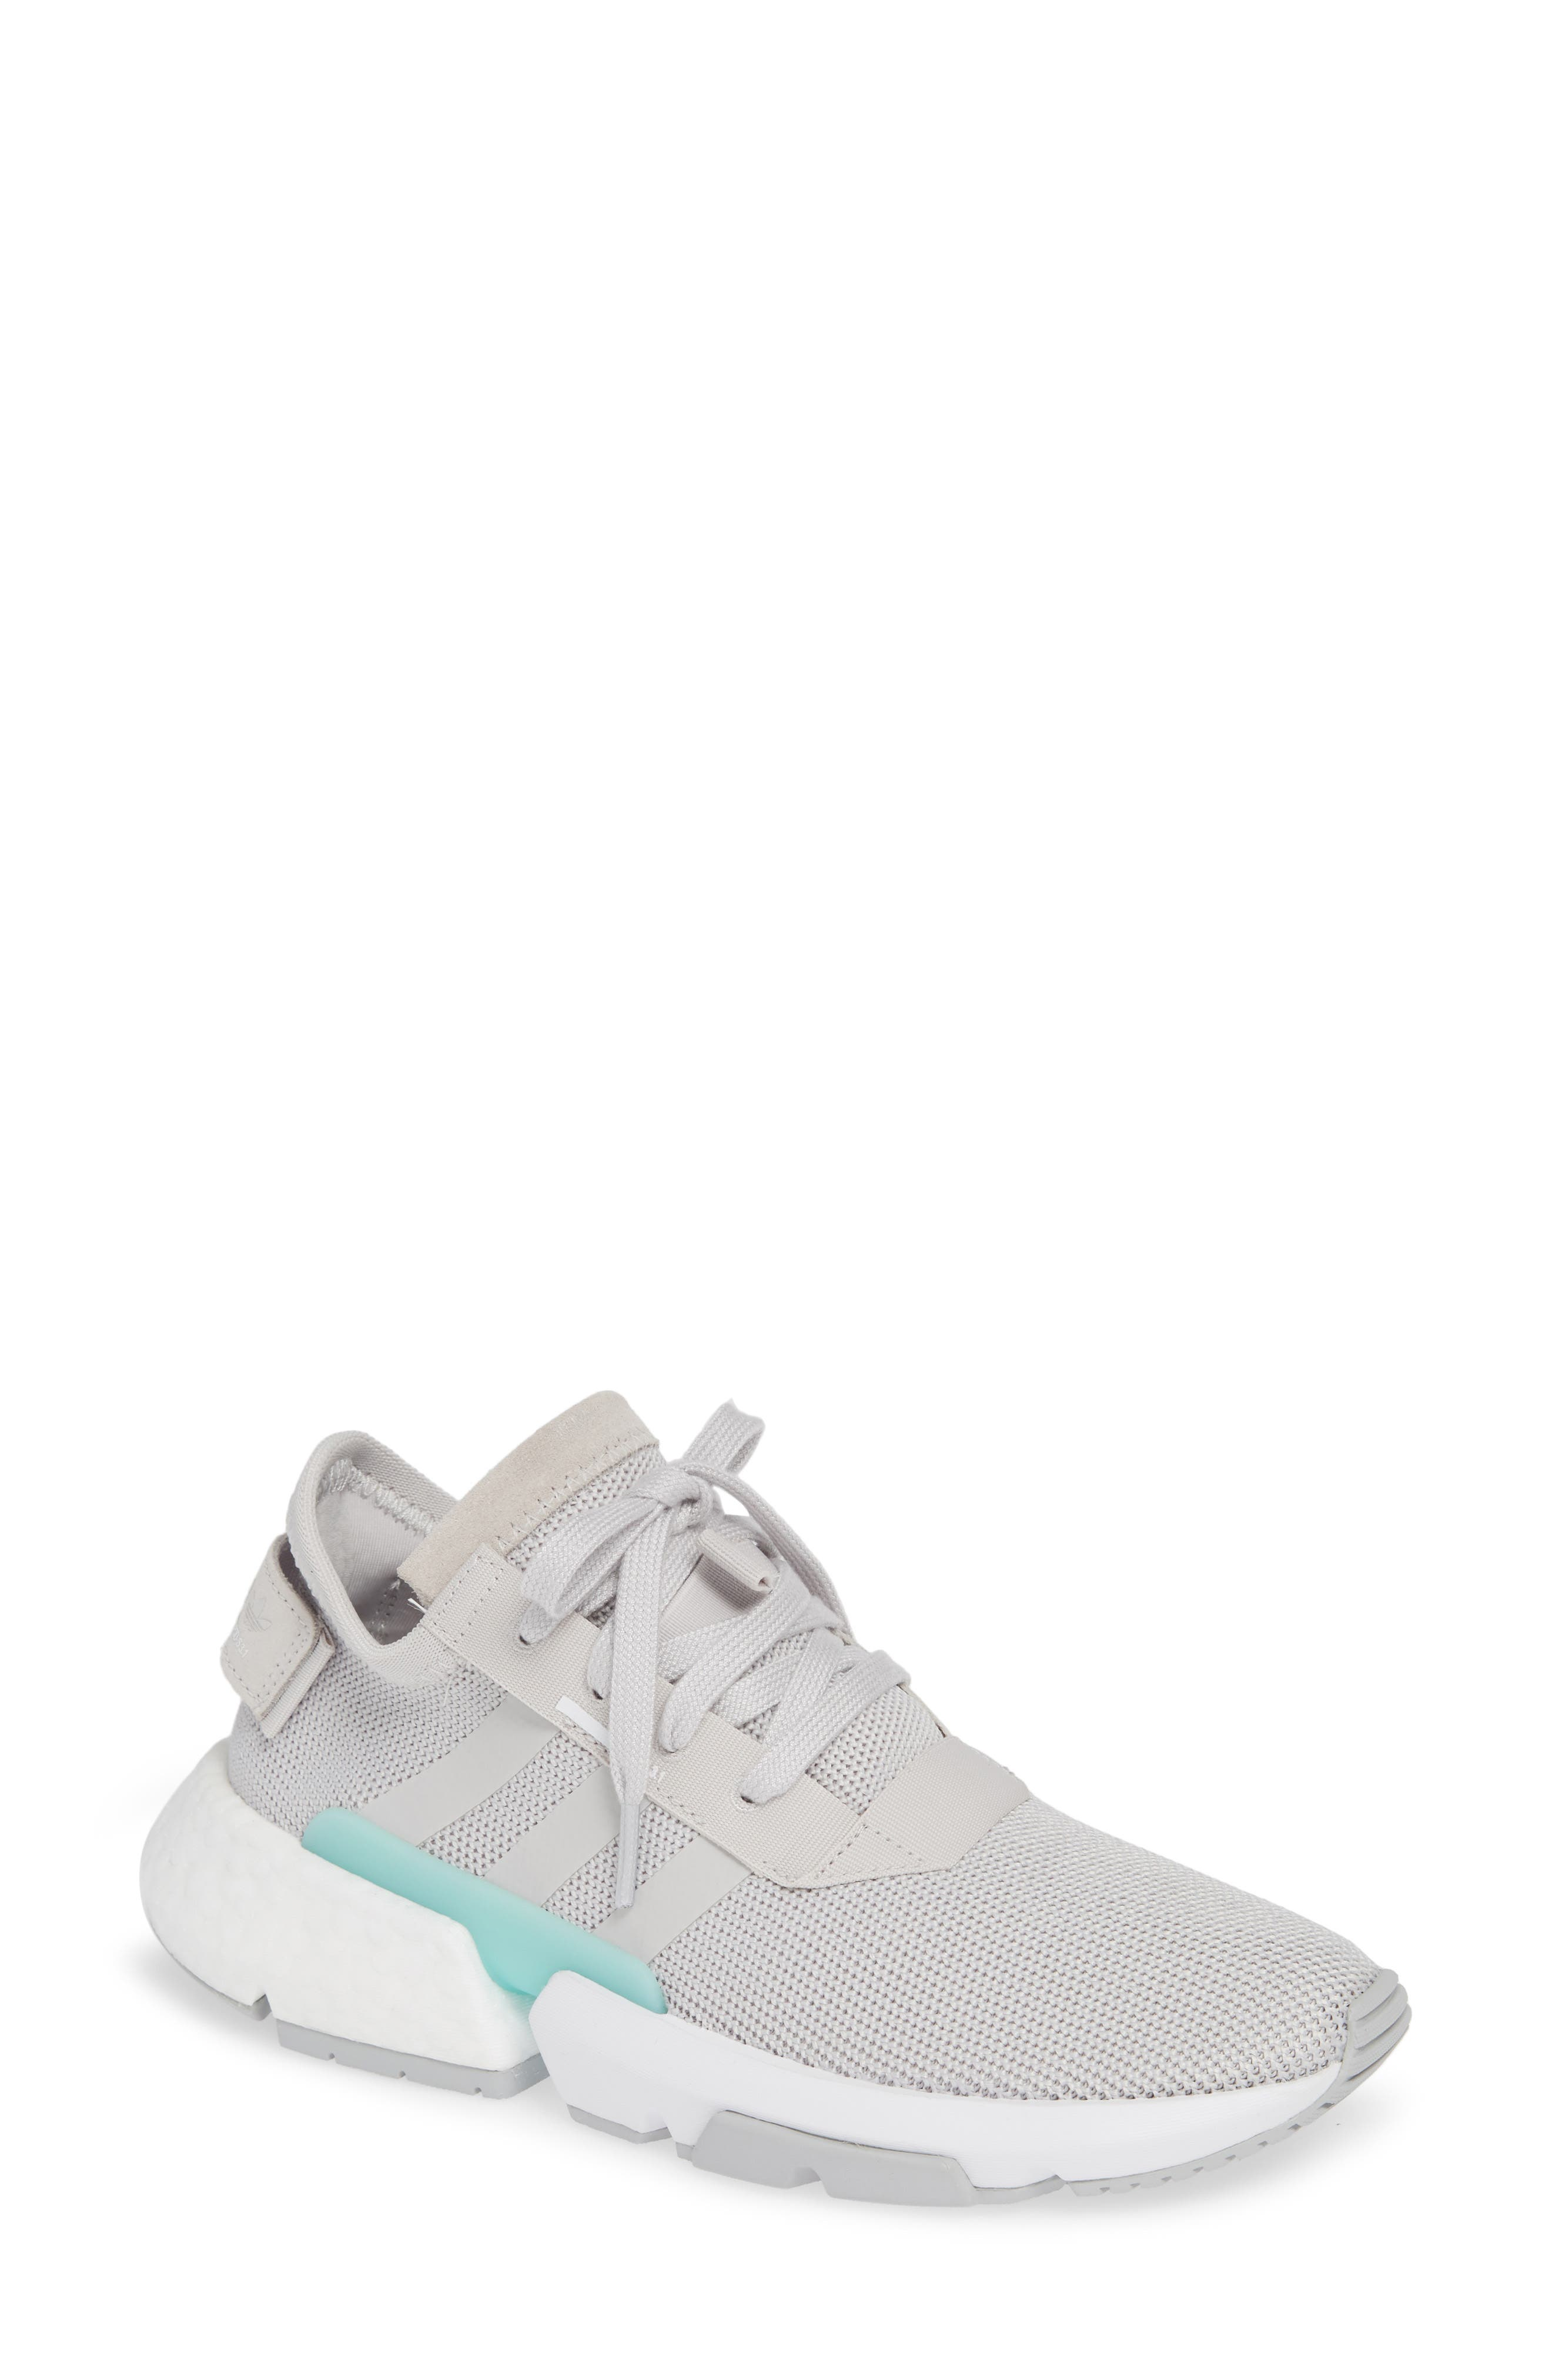 Pod S3.1 Sneaker,                         Main,                         color, GREY ONE/ GREY ONE/ CLEAR MINT